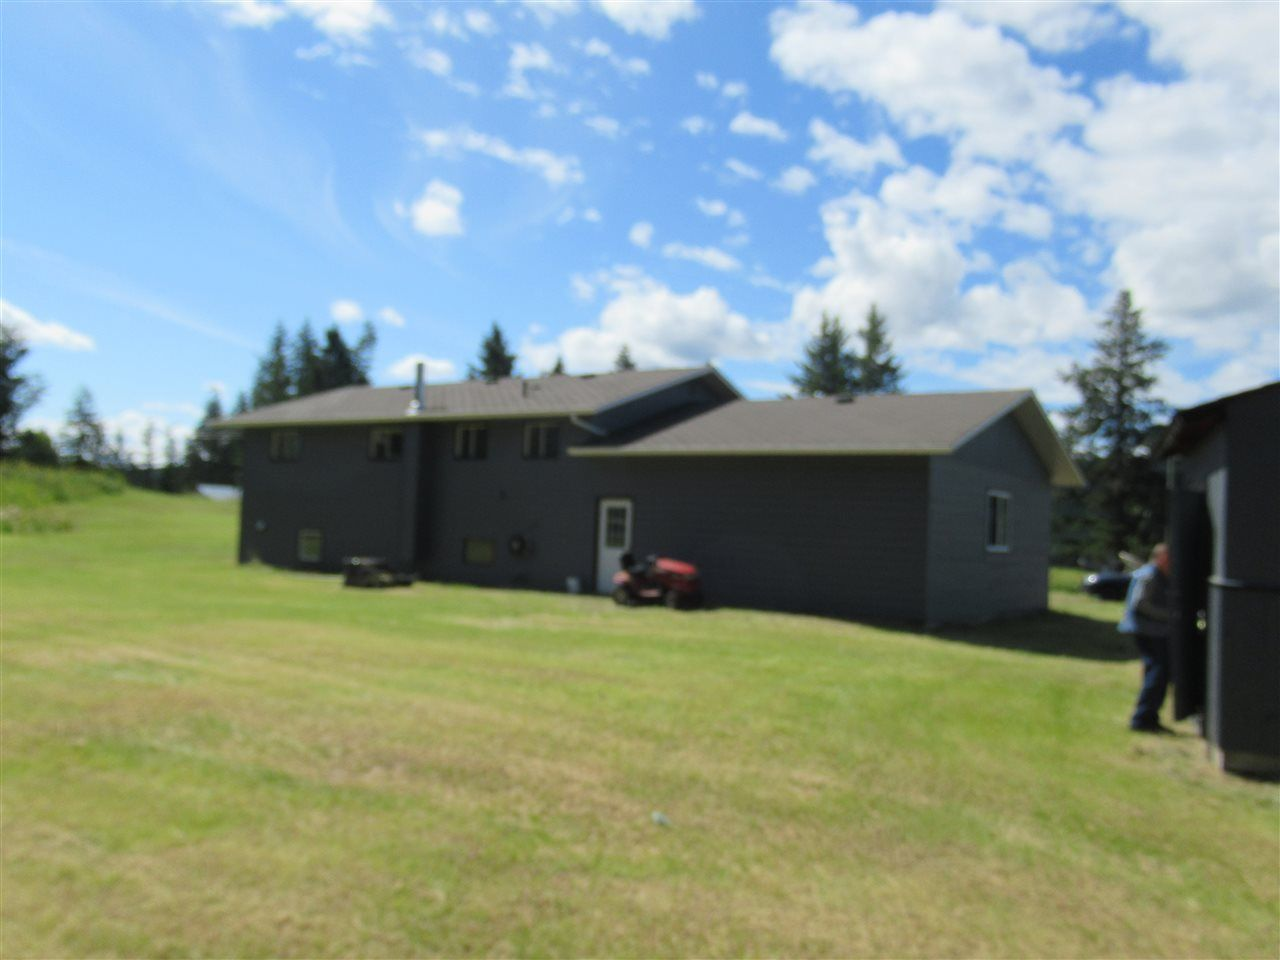 Photo 4: Photos: 3257 HINSCHE Road in Williams Lake: Williams Lake - Rural East House for sale (Williams Lake (Zone 27))  : MLS®# R2477340